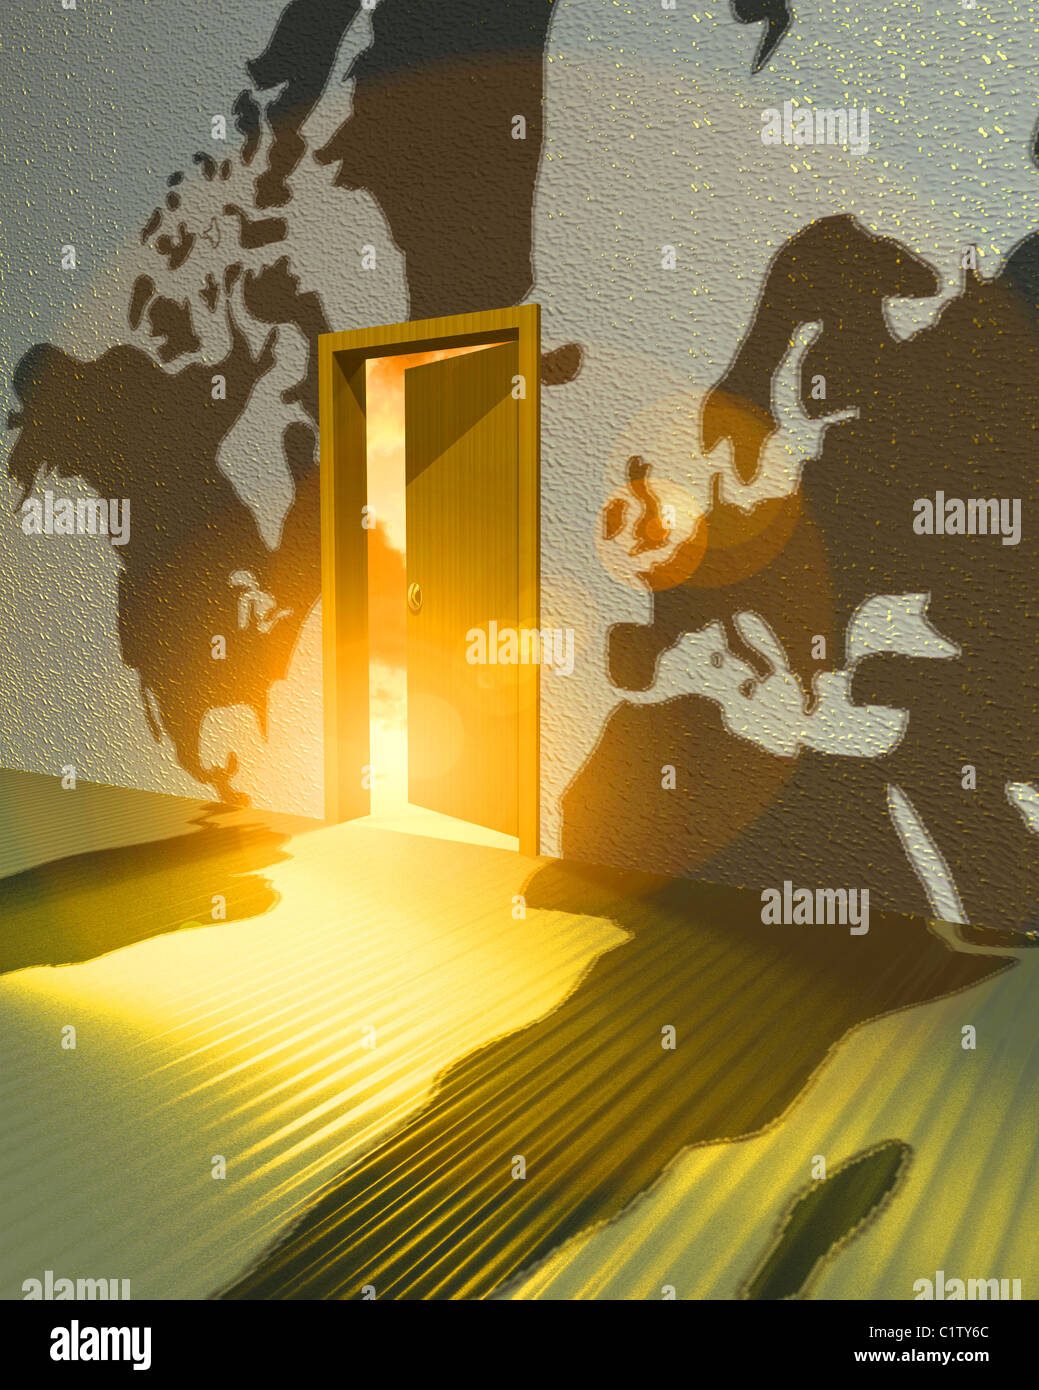 Open door policy stock photos open door policy stock images alamy libya middle east open door policy strategy world map politics stock image gumiabroncs Choice Image